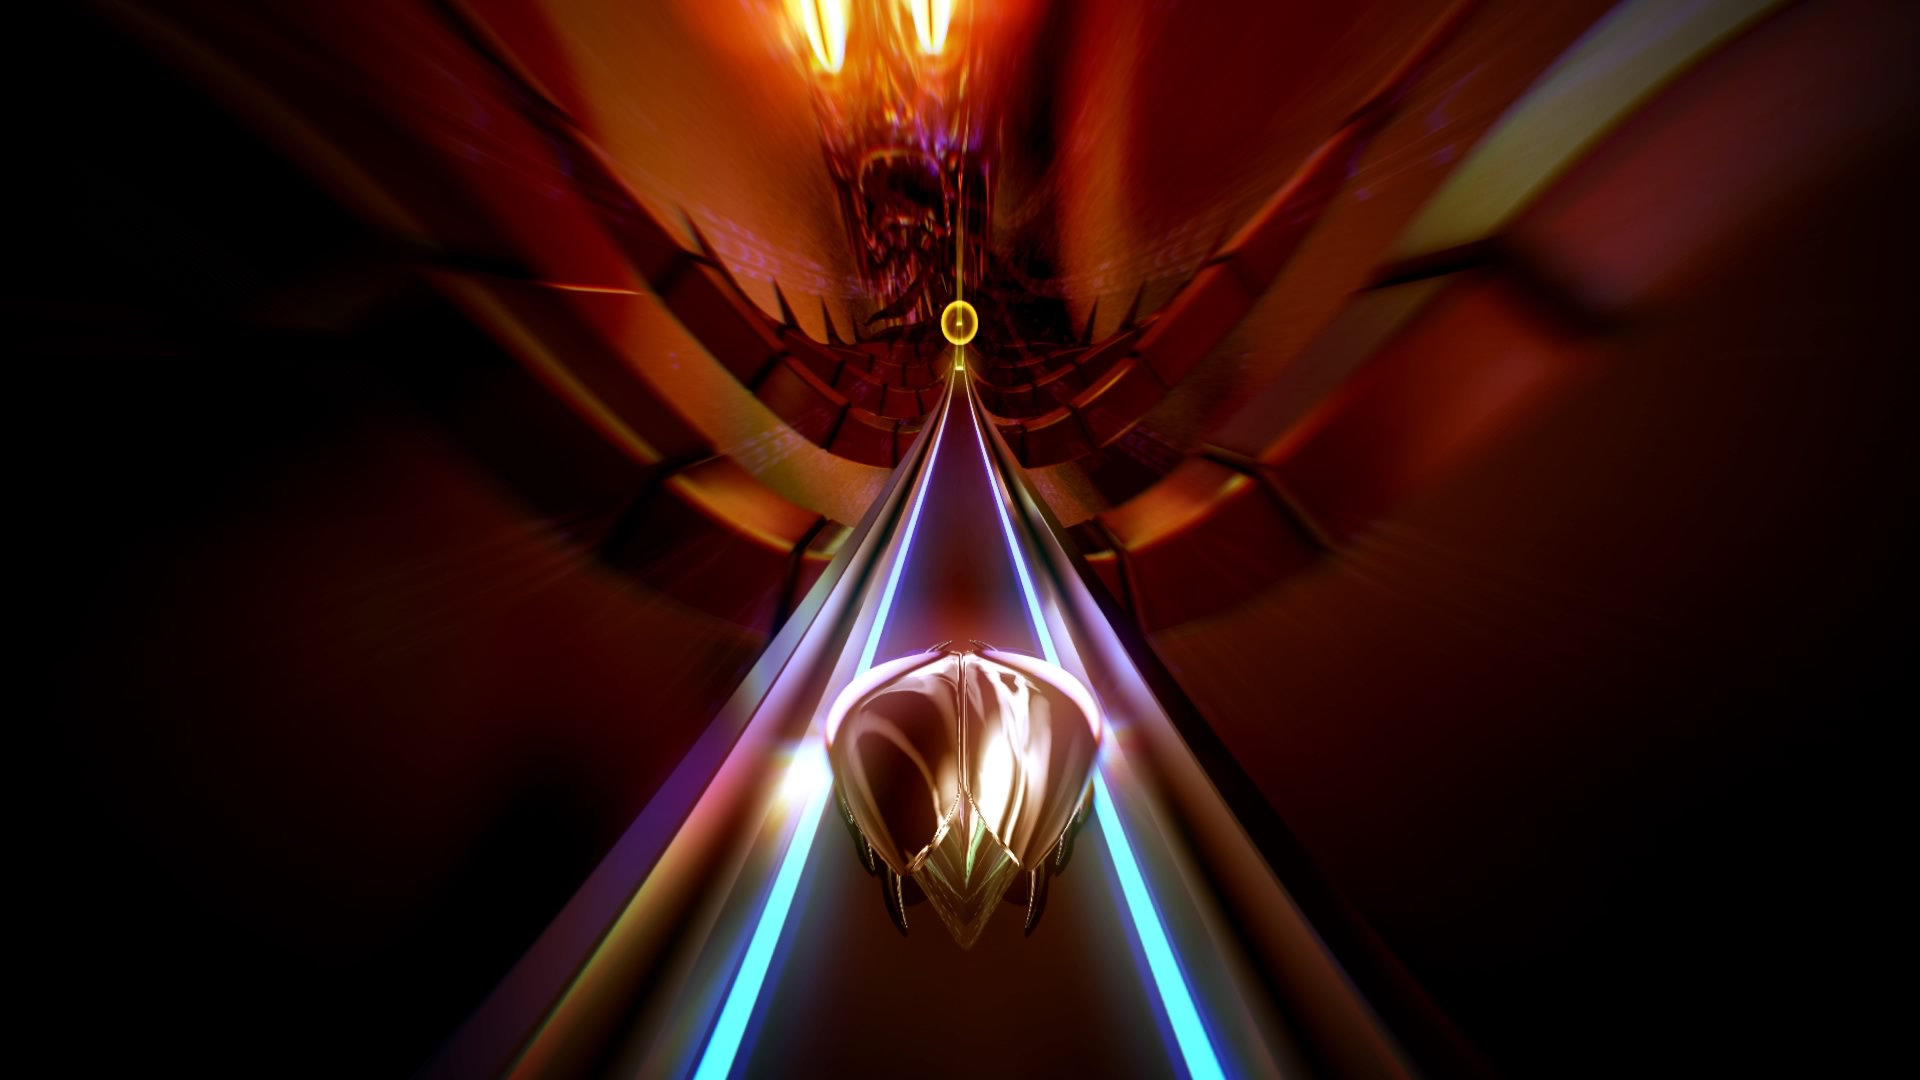 thumper game hd desktop wallpaper 69537